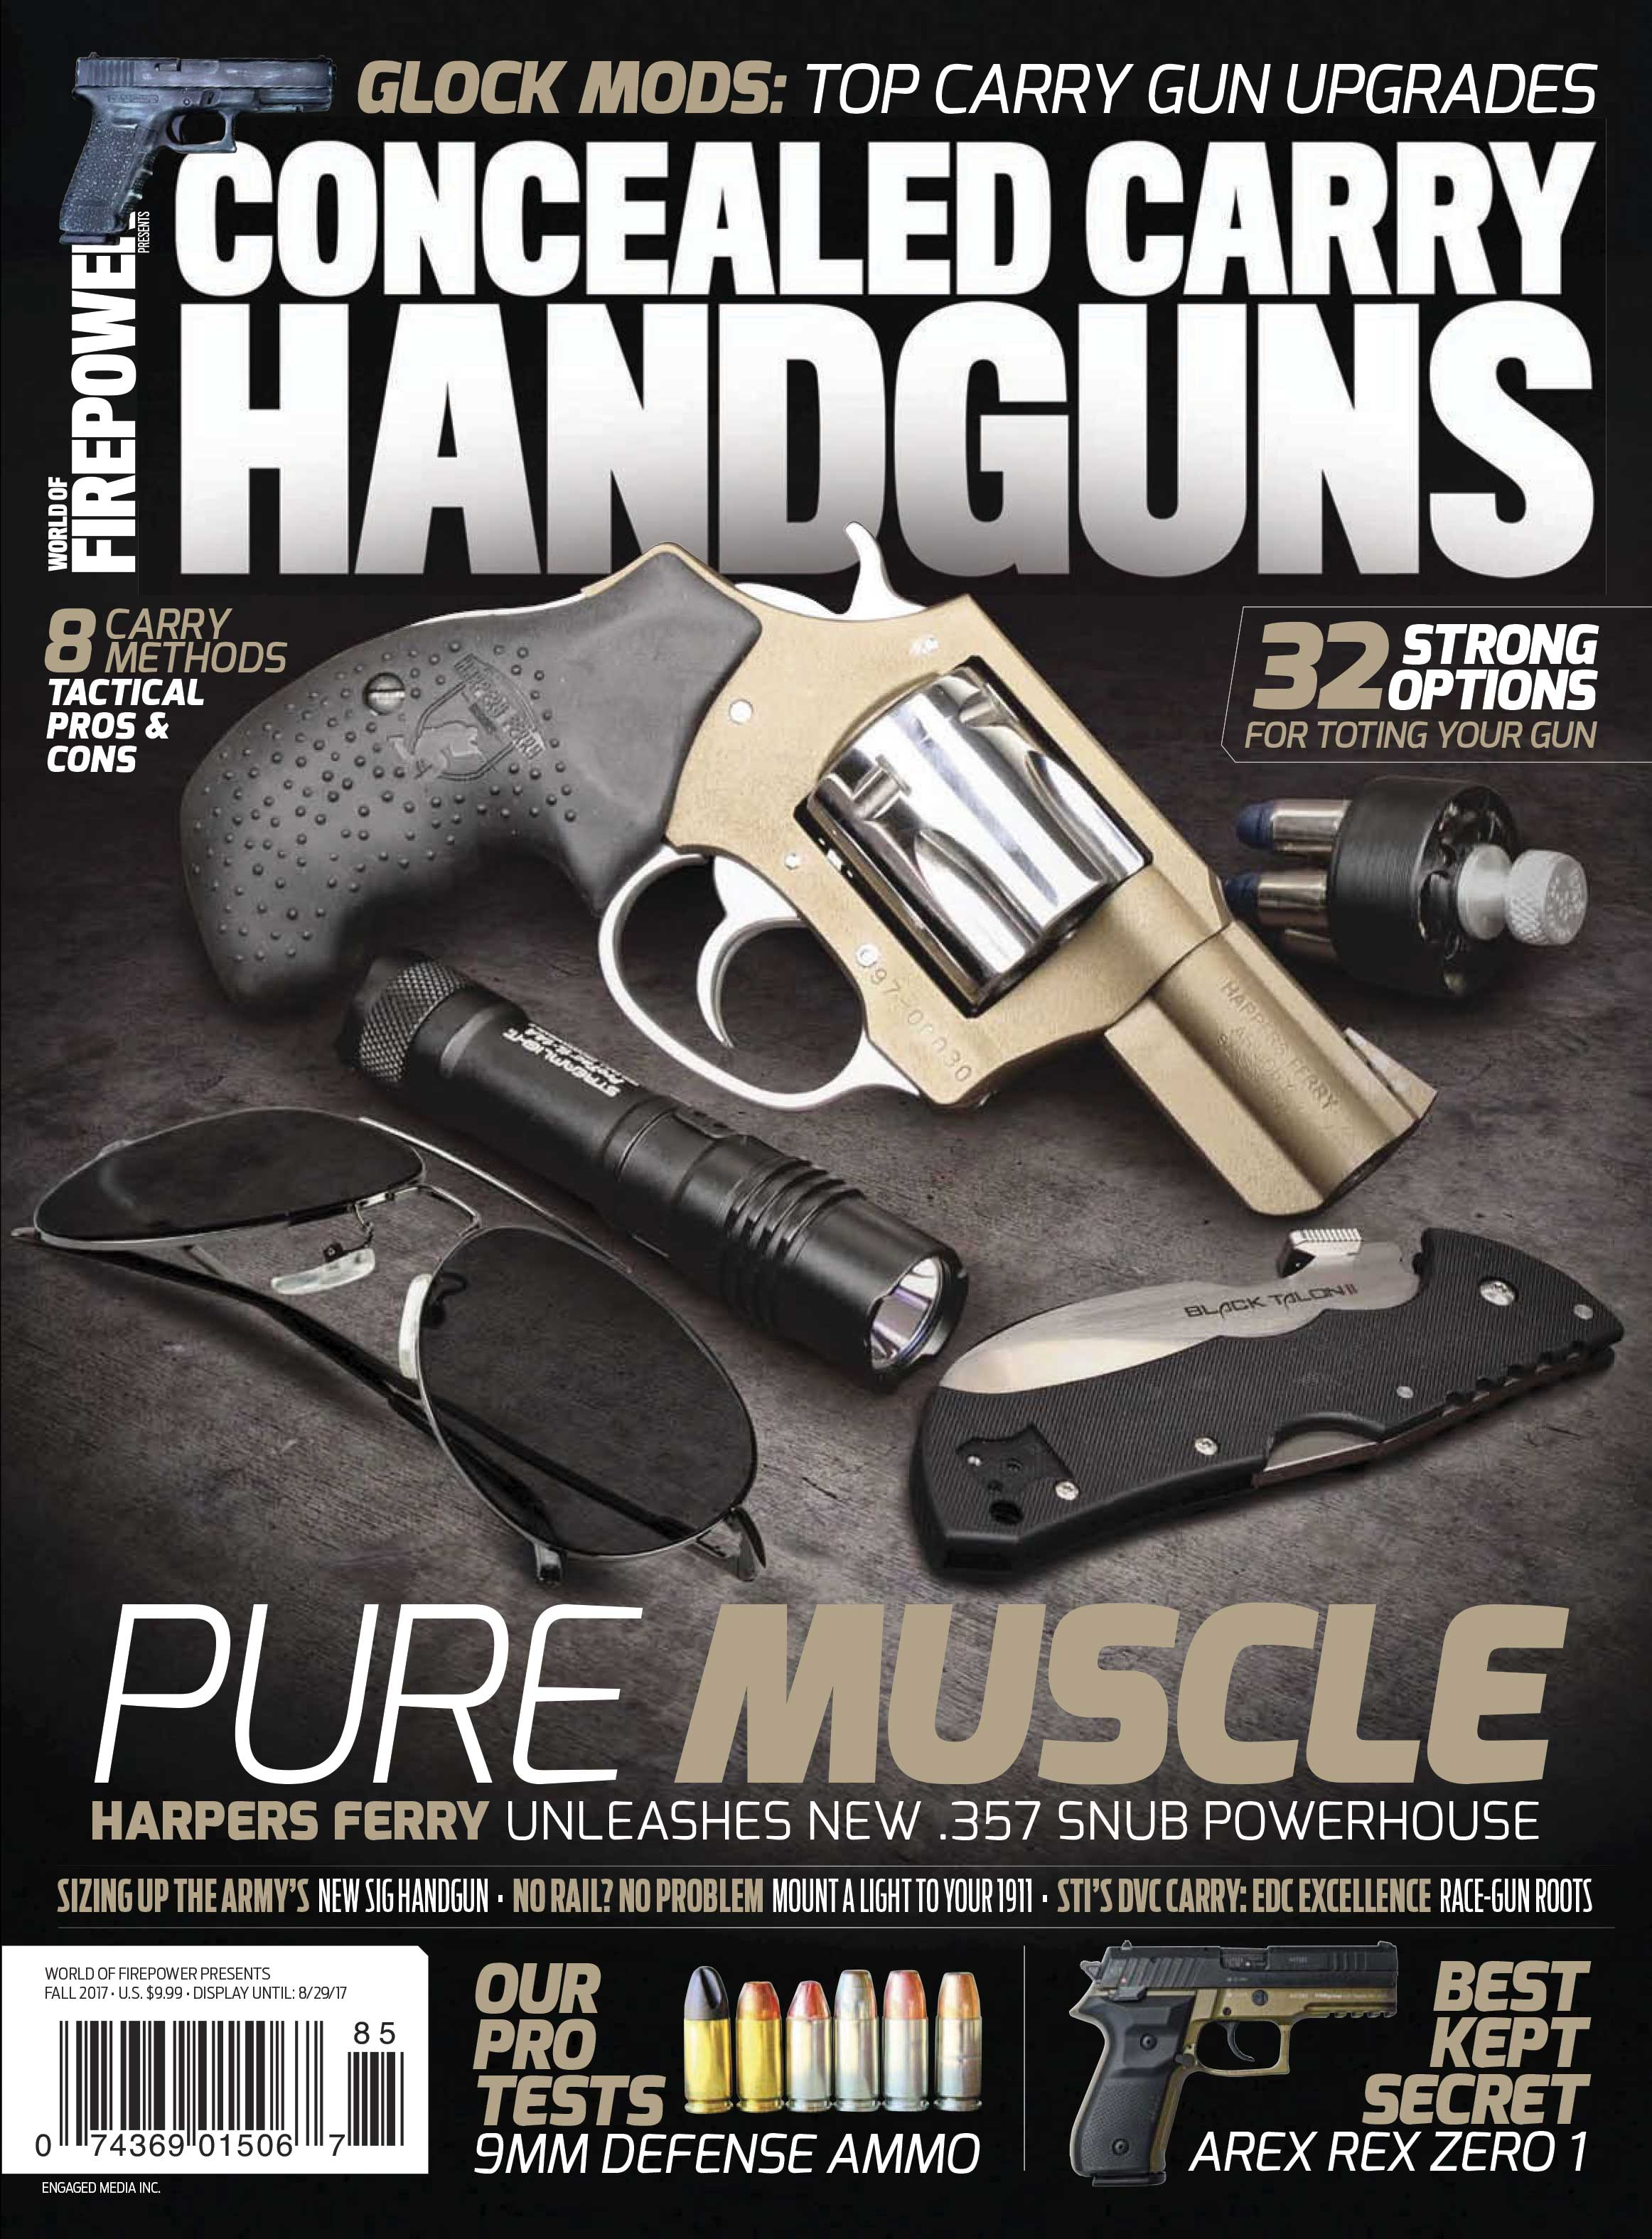 Concealed Carry Handguns Magazine